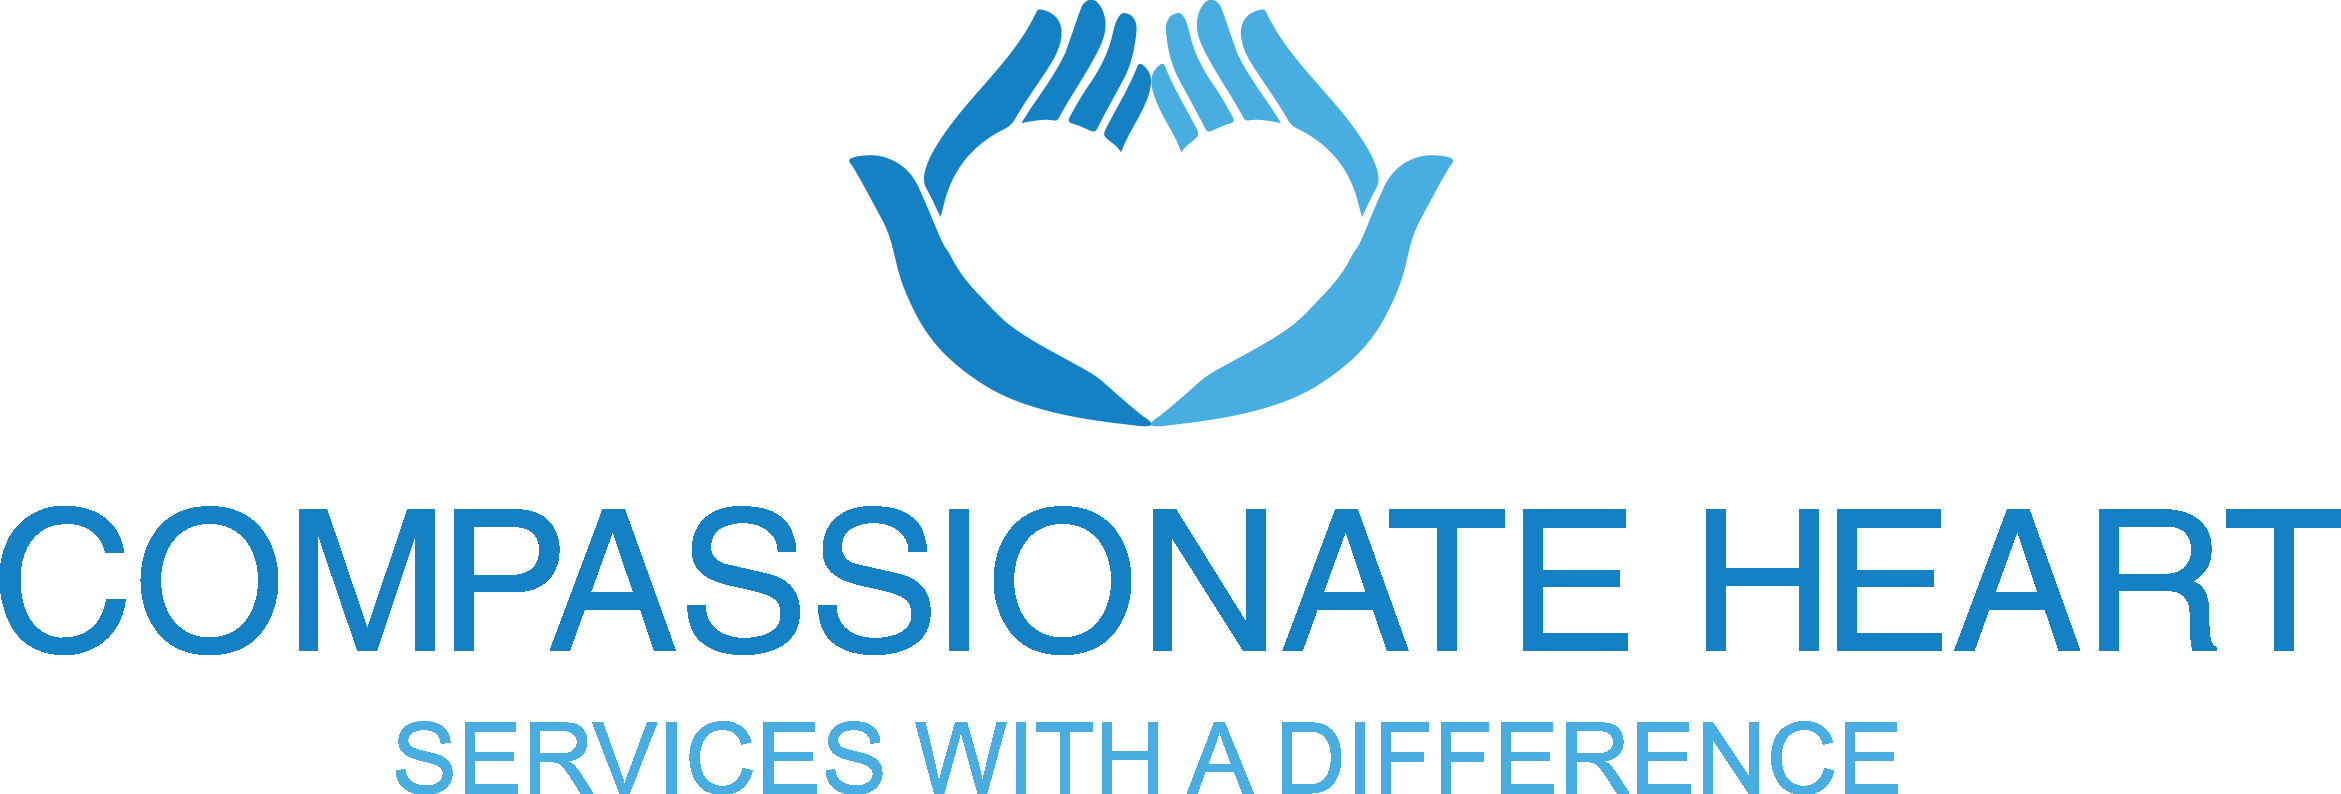 compassionate-heart_logo-154-_-small-1_blue